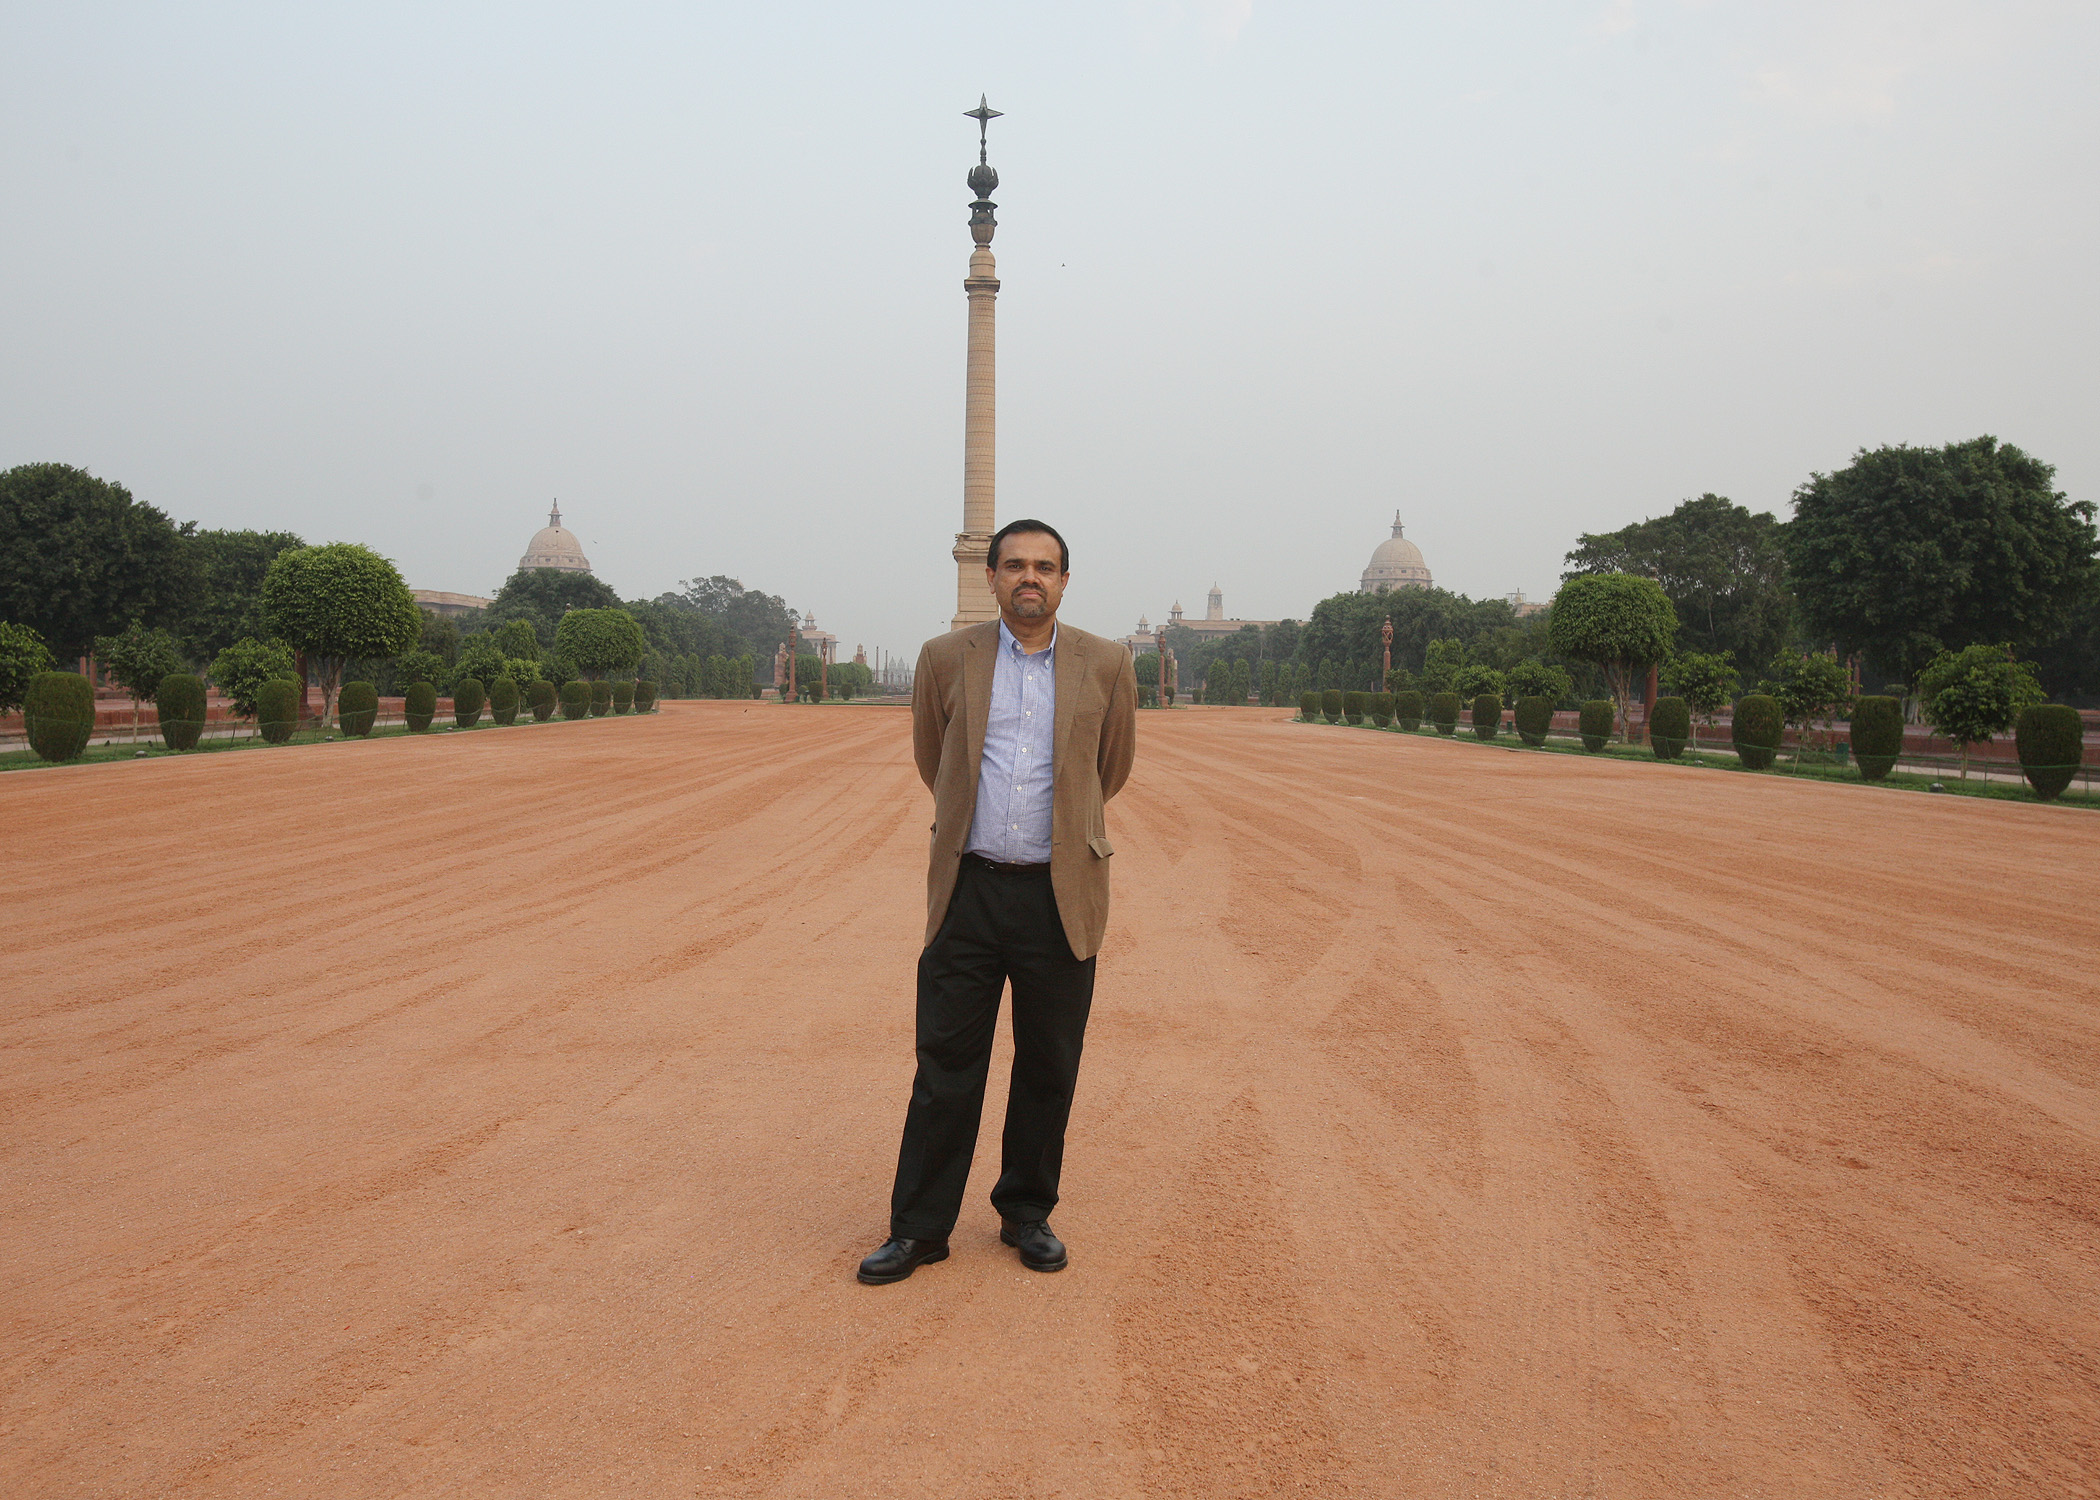 In Front of the Jaipur Column